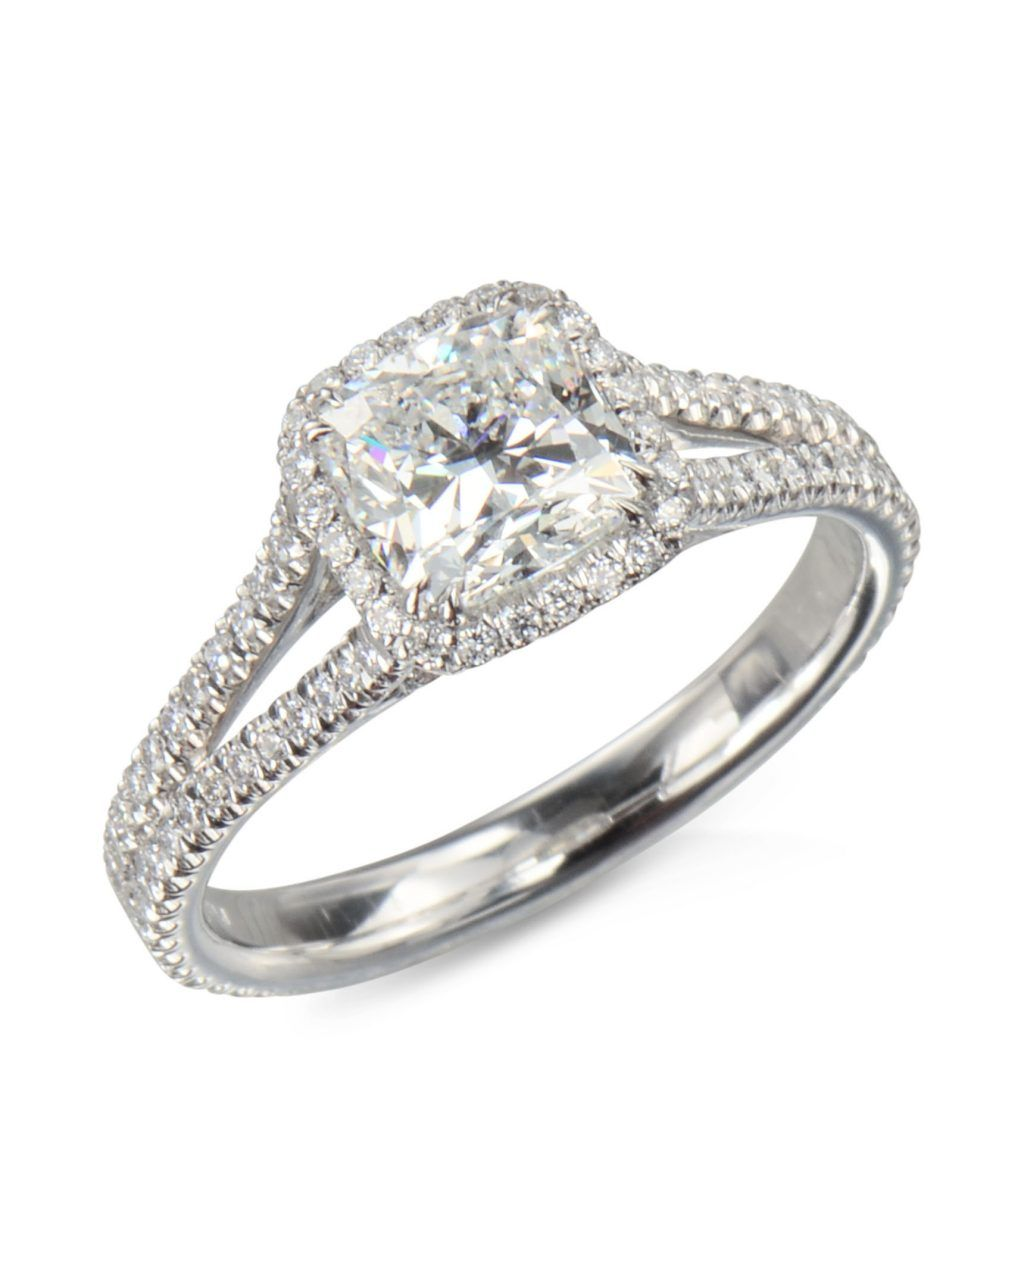 20bb7109d A platinum diamond split shank mounting for 1.25+ radiant center stone. The  price is for the setting only.